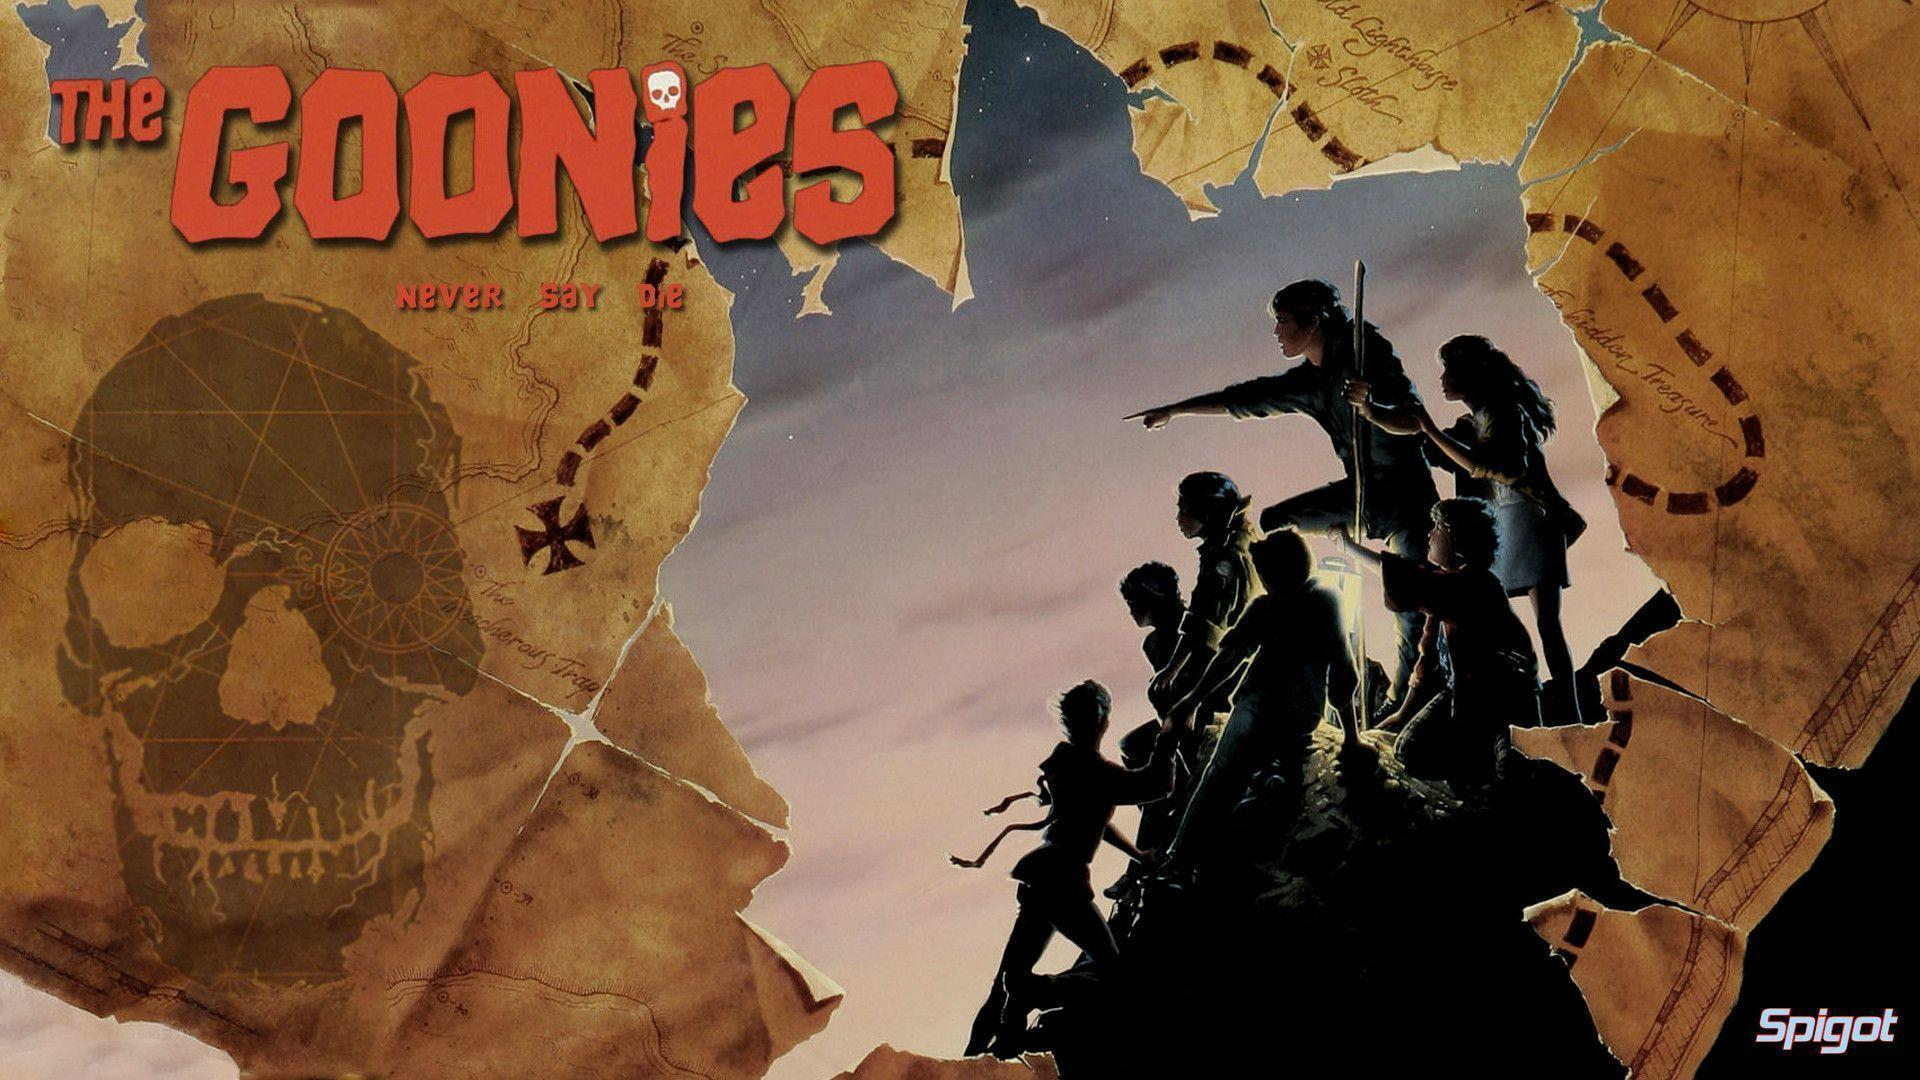 The Goonies Wallpapers 3062 Wallpapers